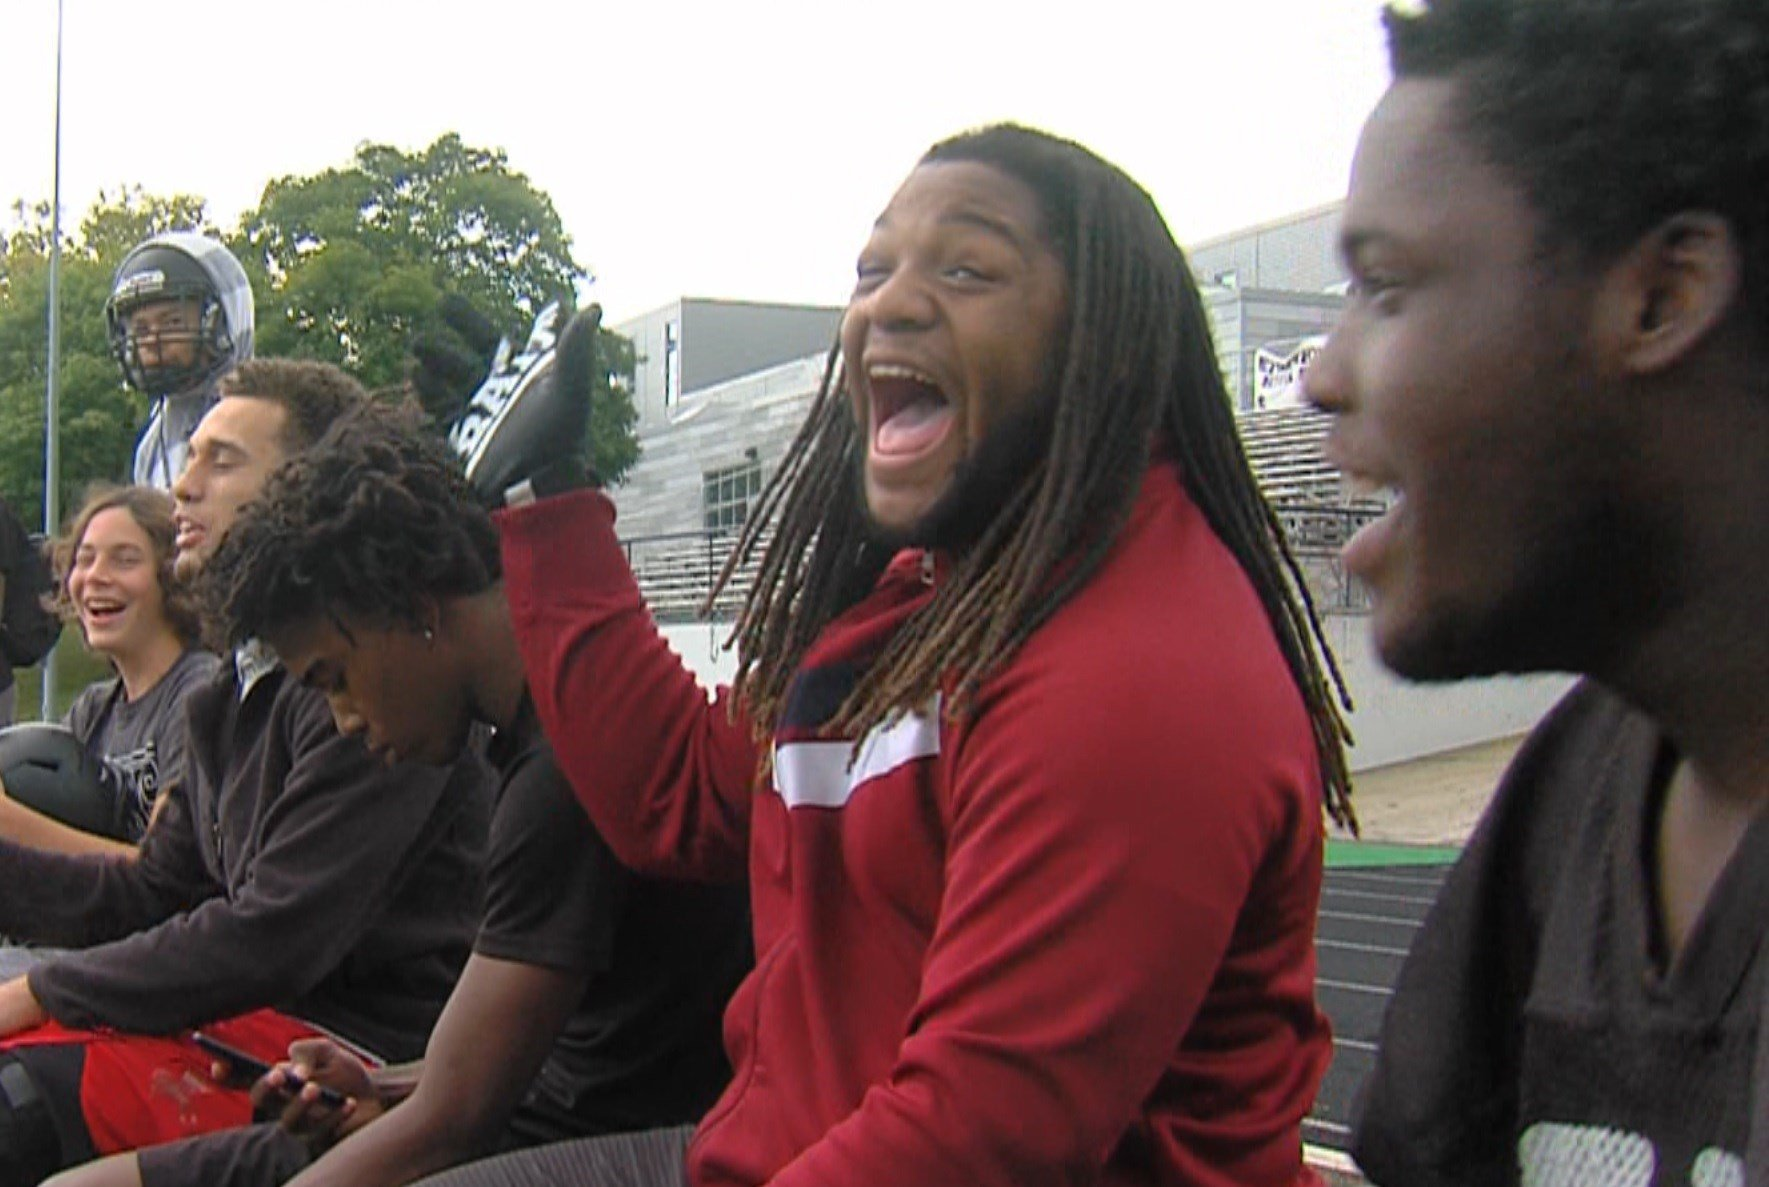 Senior running back/defensive lineman Drew Thaxton and his teammates enjoy a laugh on Thursday at practice.